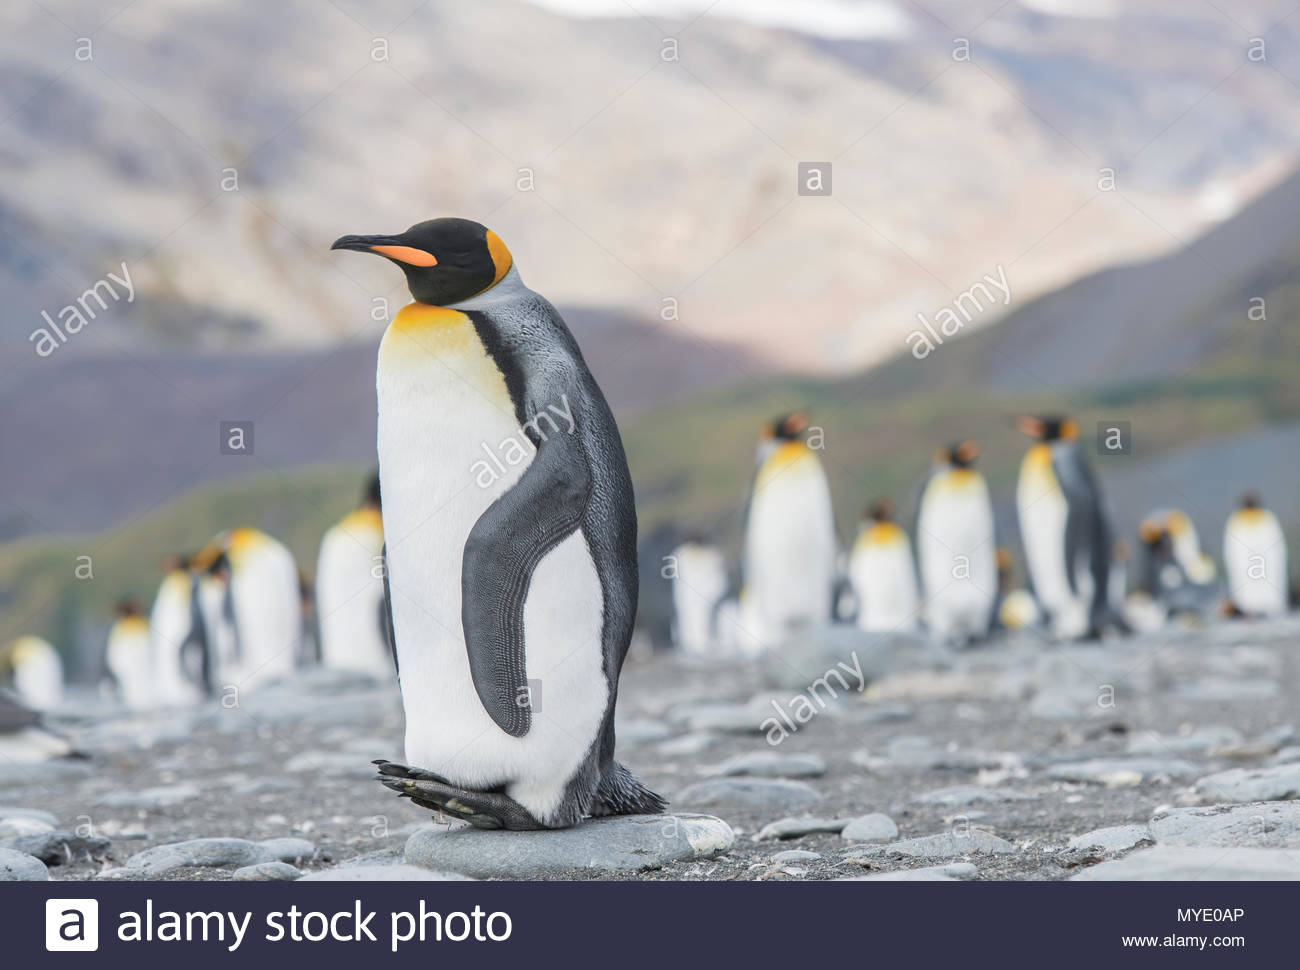 A King penguin at roost. - Stock Image